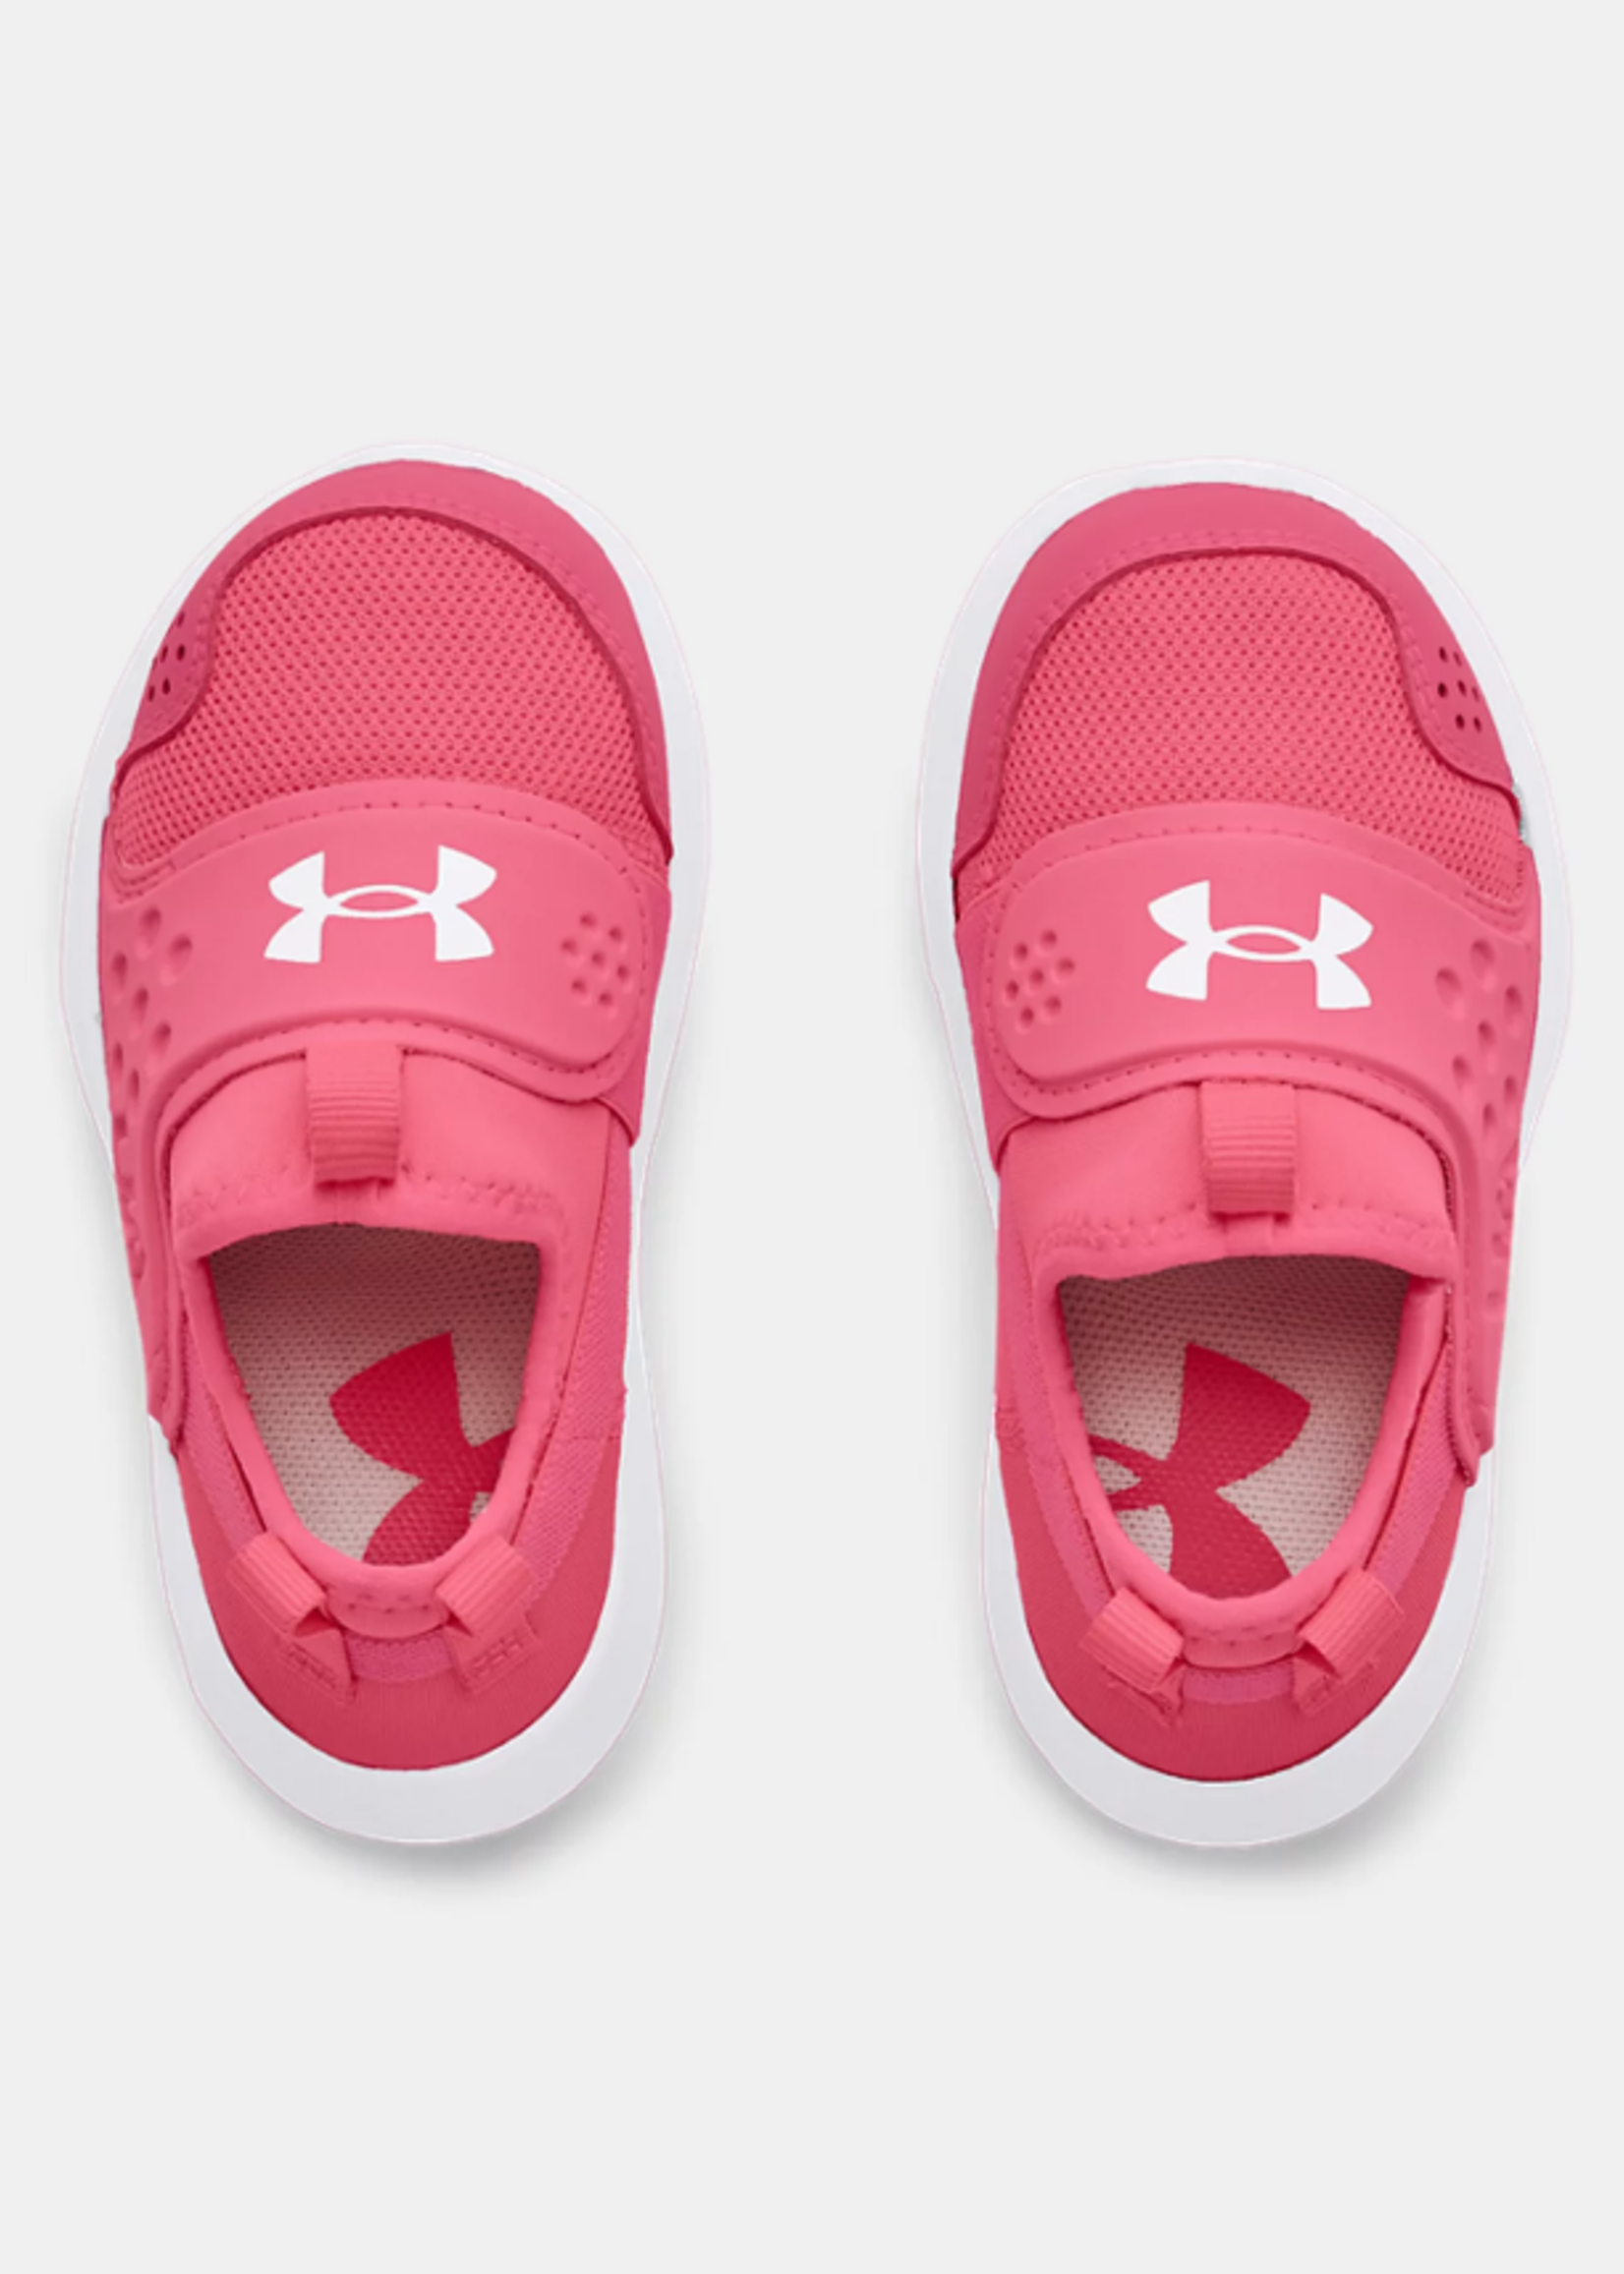 Under Armour GIRLS' INFANT UA RUNPLAY SHOES 3024217